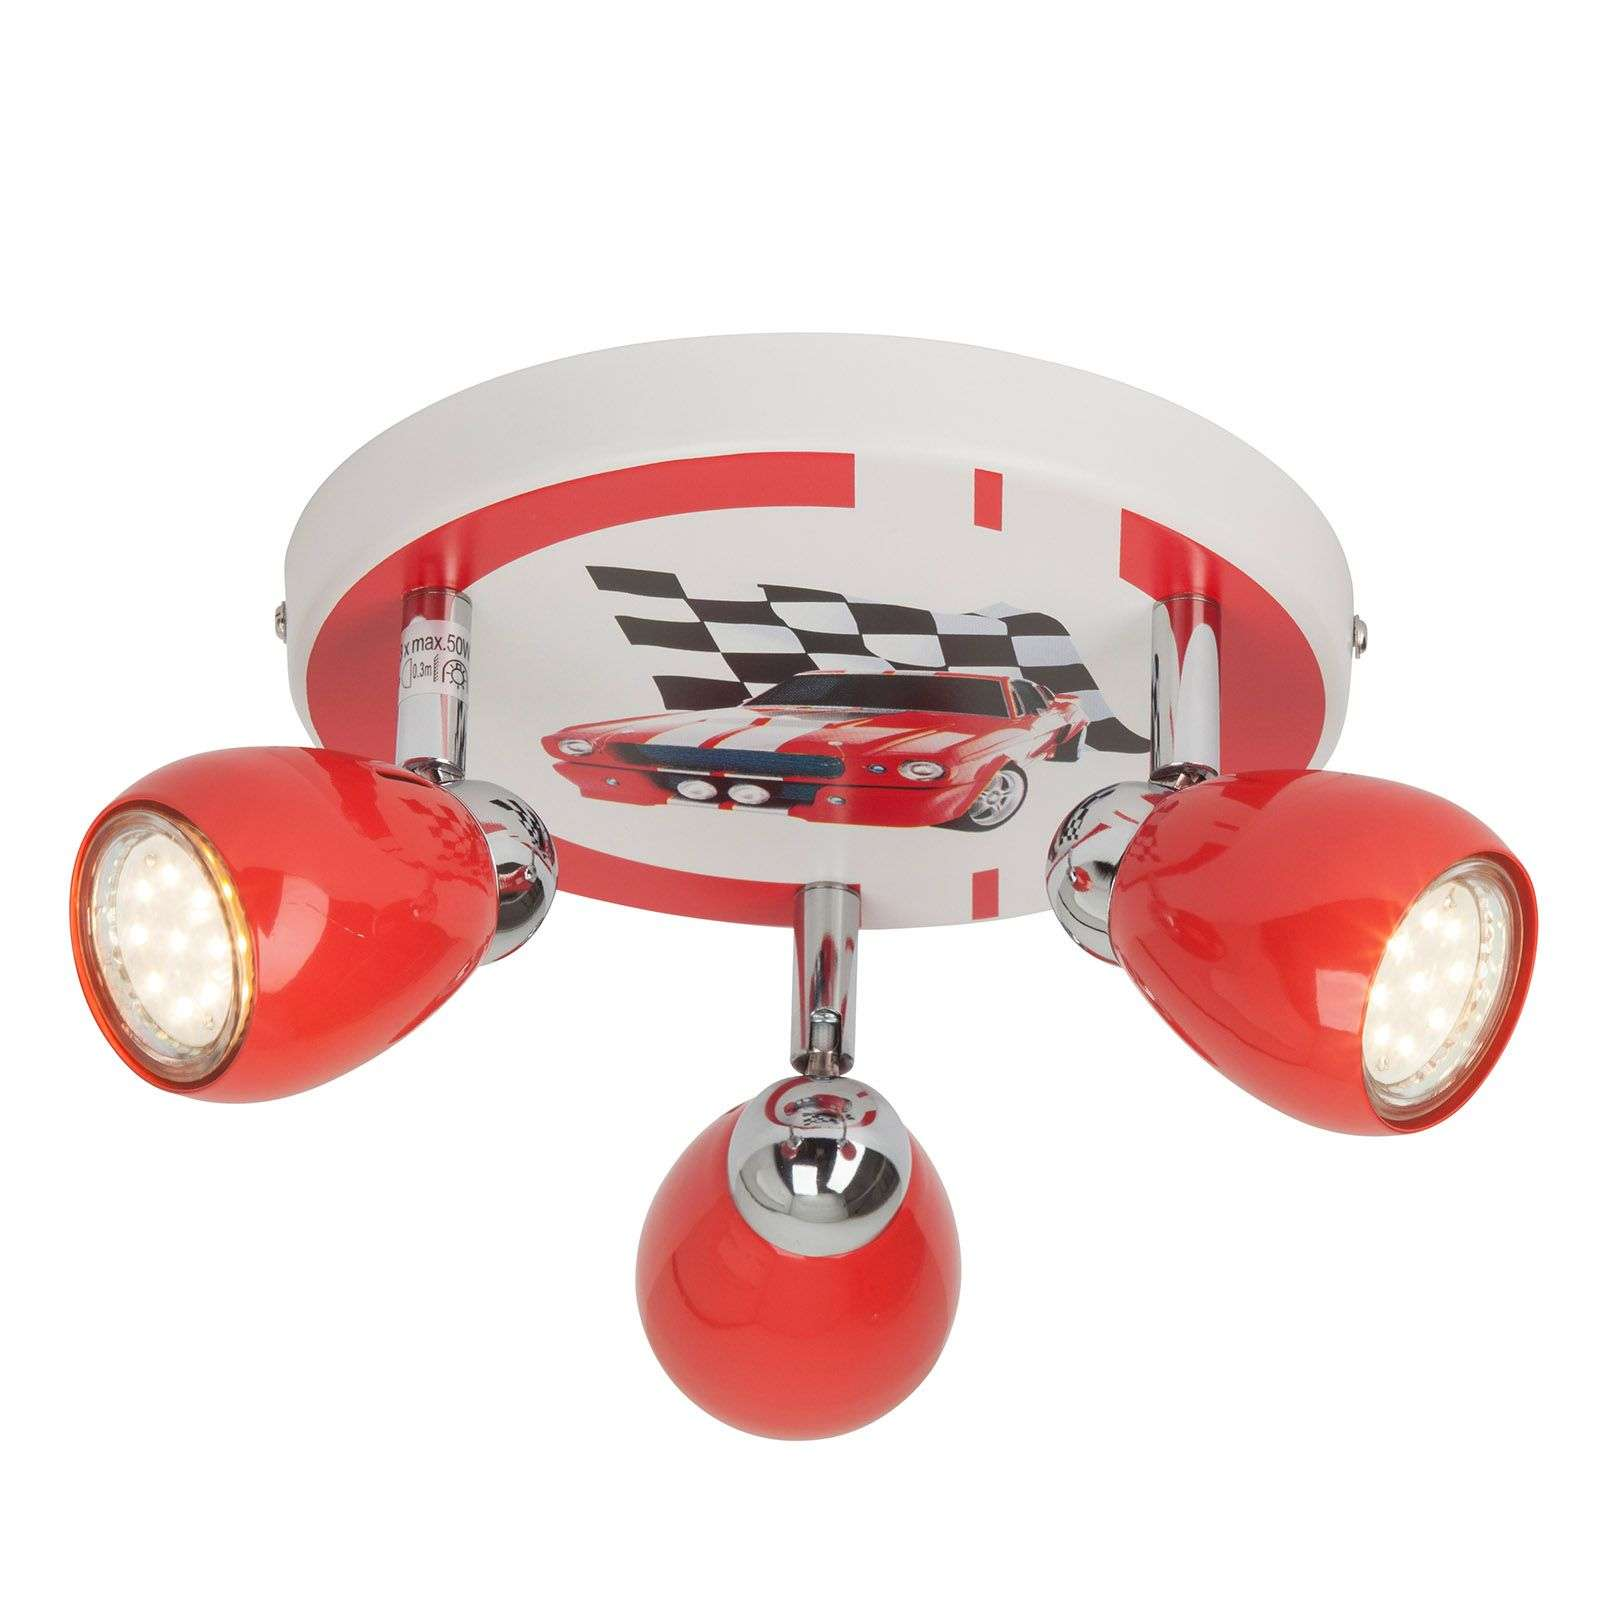 childrens ceiling lighting. Racing Childrens Ceiling Light-1507232-31 Lighting A